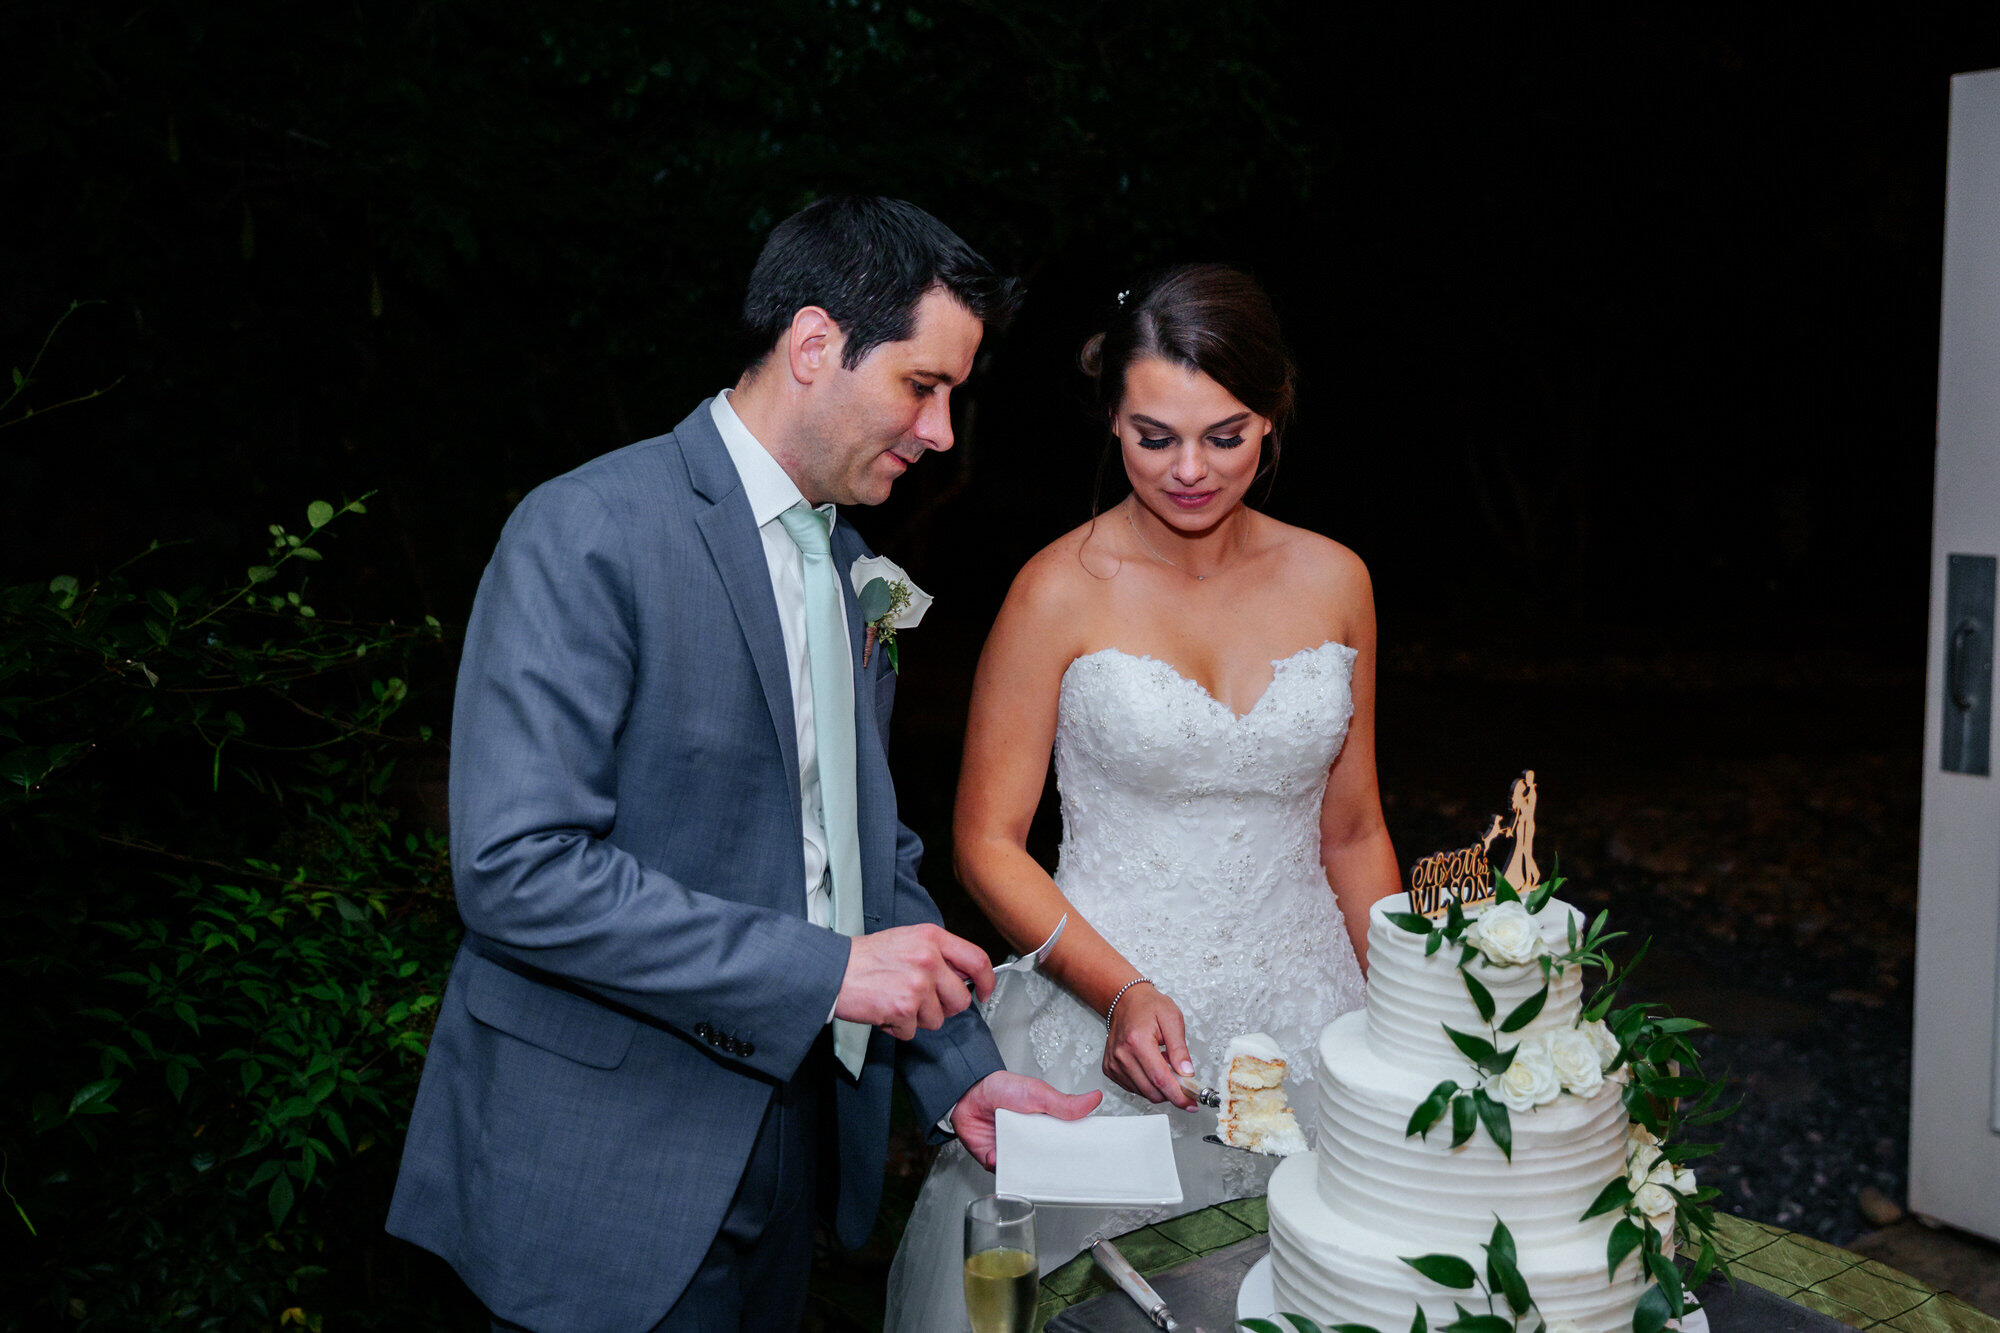 twigs-tempietto-wedding-greenville-downtown-390.JPG